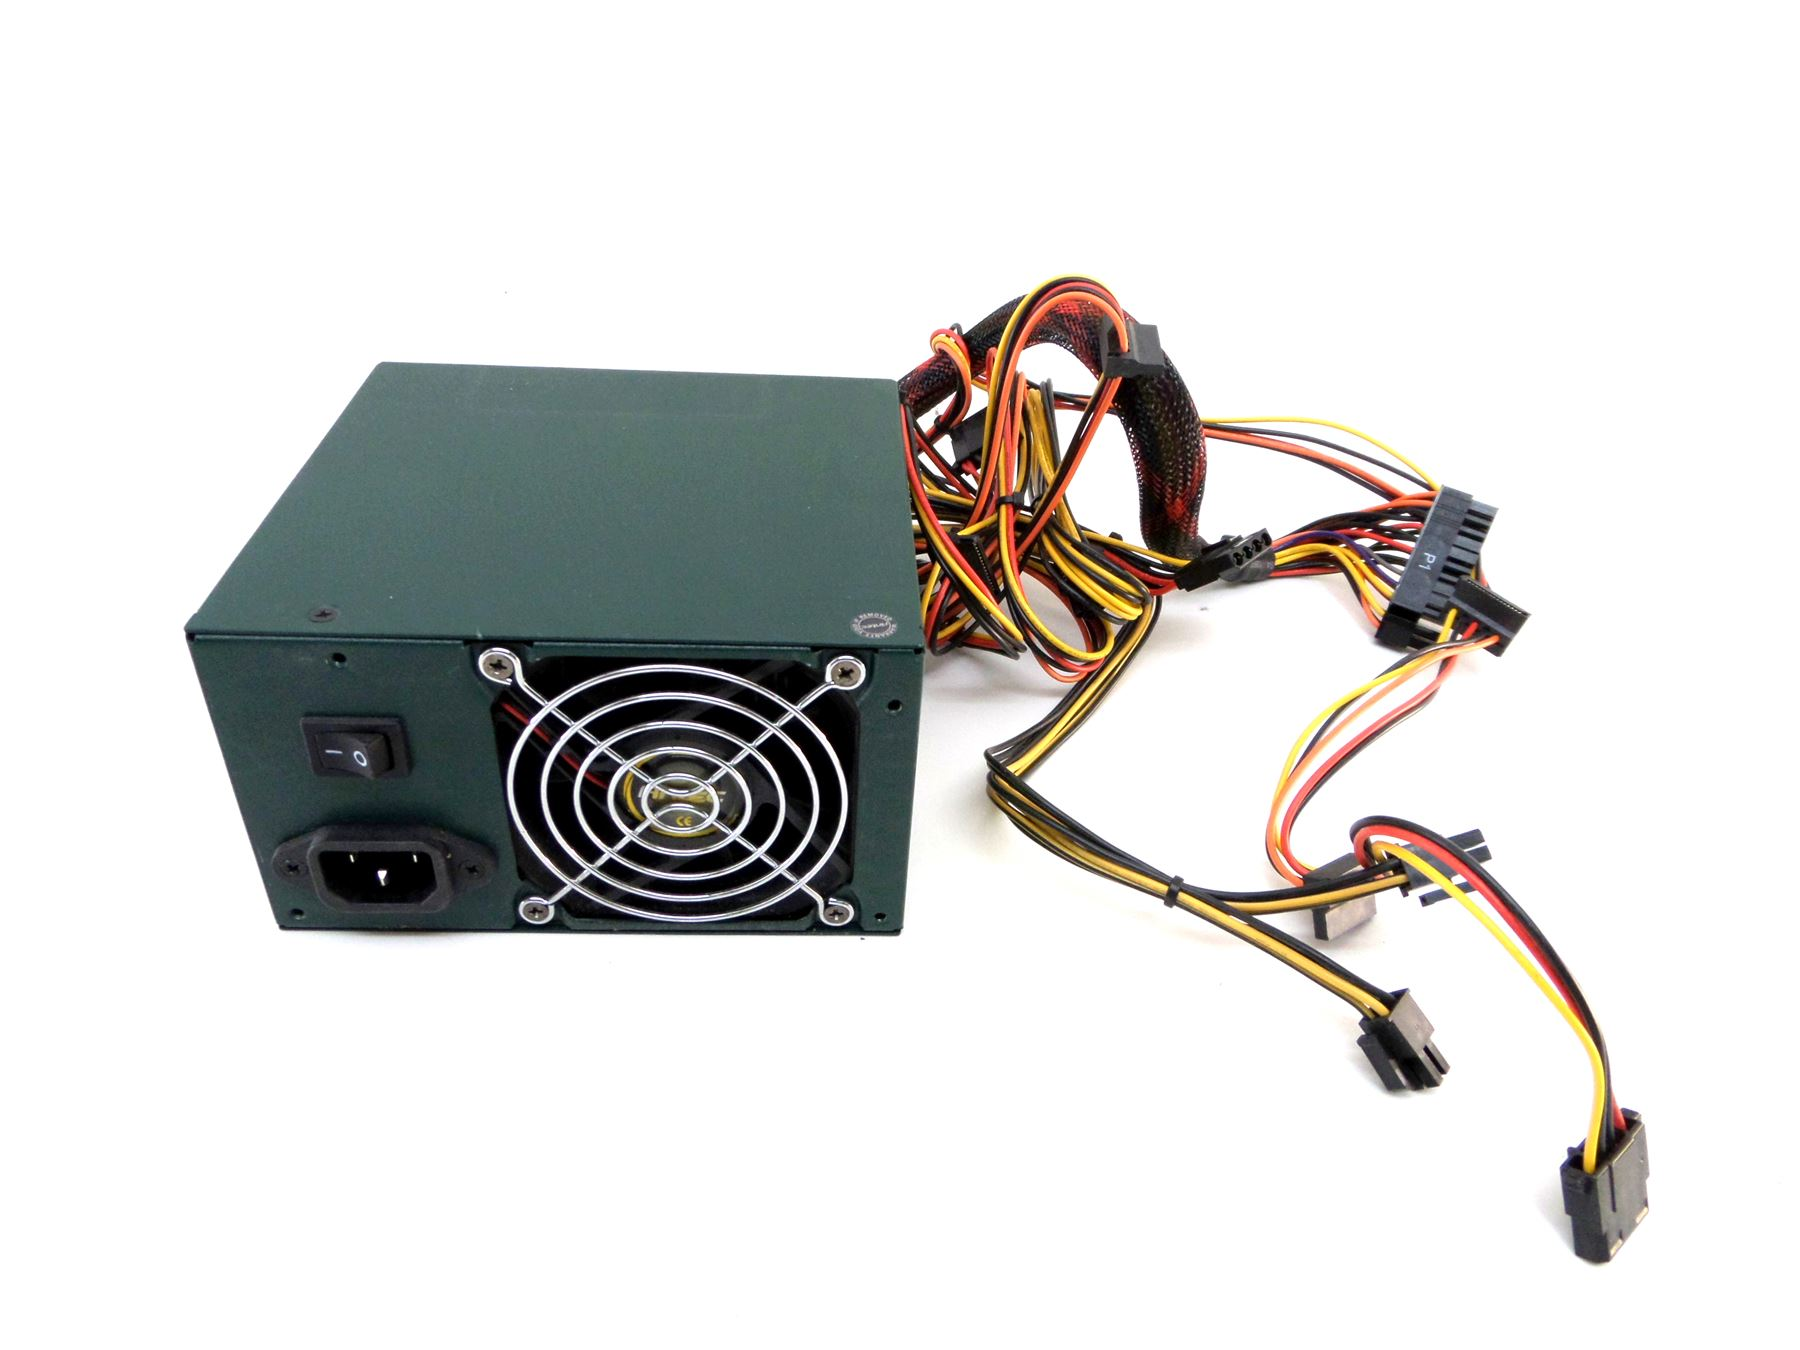 Antec EarthWatts 380w Green ATX Power Supply PSU EA-380D | eBay